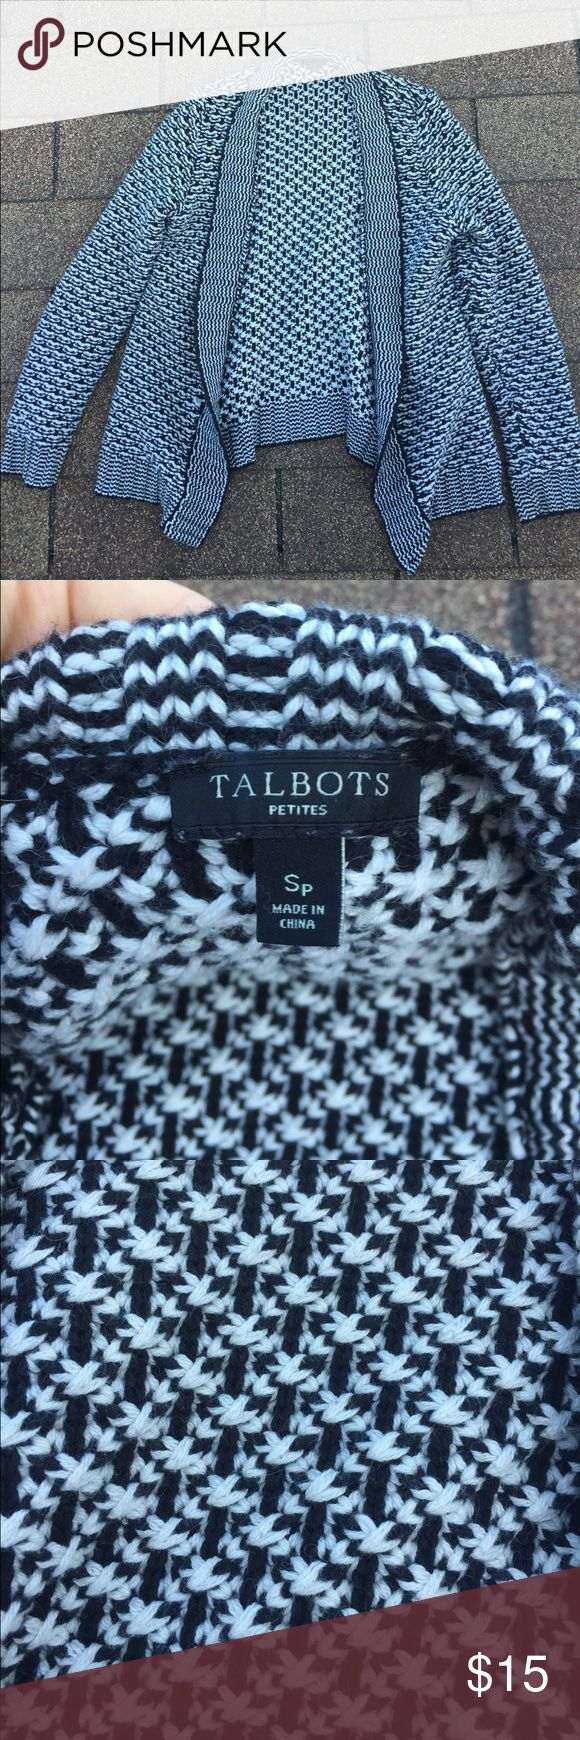 Talbot's Petite Sweater Cardigan Adorable black and white sweater cardigan by Talbots. Petite Small. Great condition. Gently worn. Smoke-free home. Talbots Sweaters Cardigans